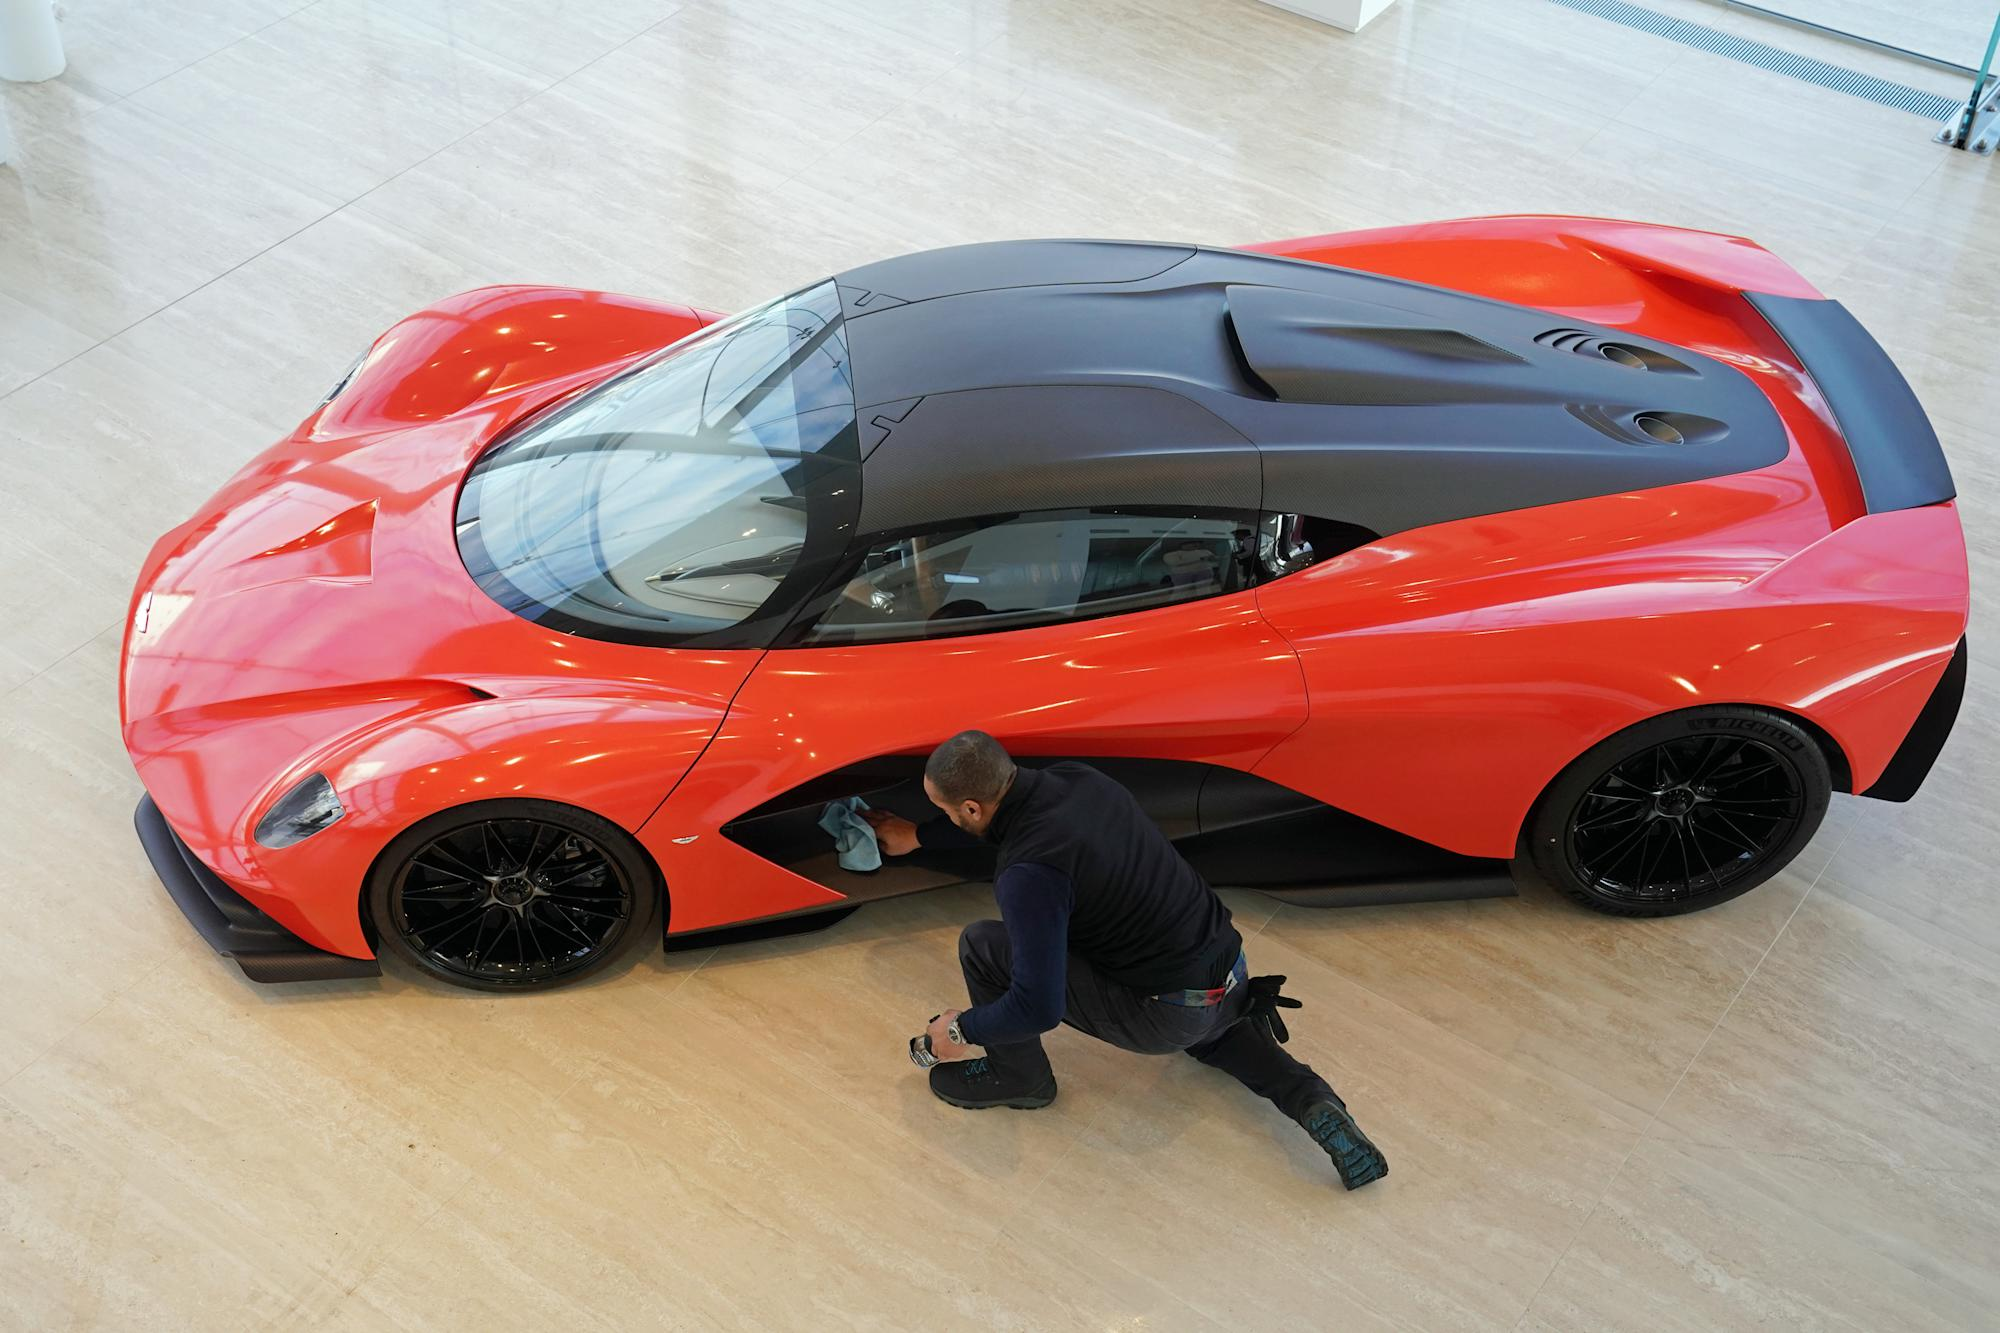 Stock Market Report Aston Martin Raises Cash Easyjet S Sale And Leaseback Deal And Intu Faces Collapse